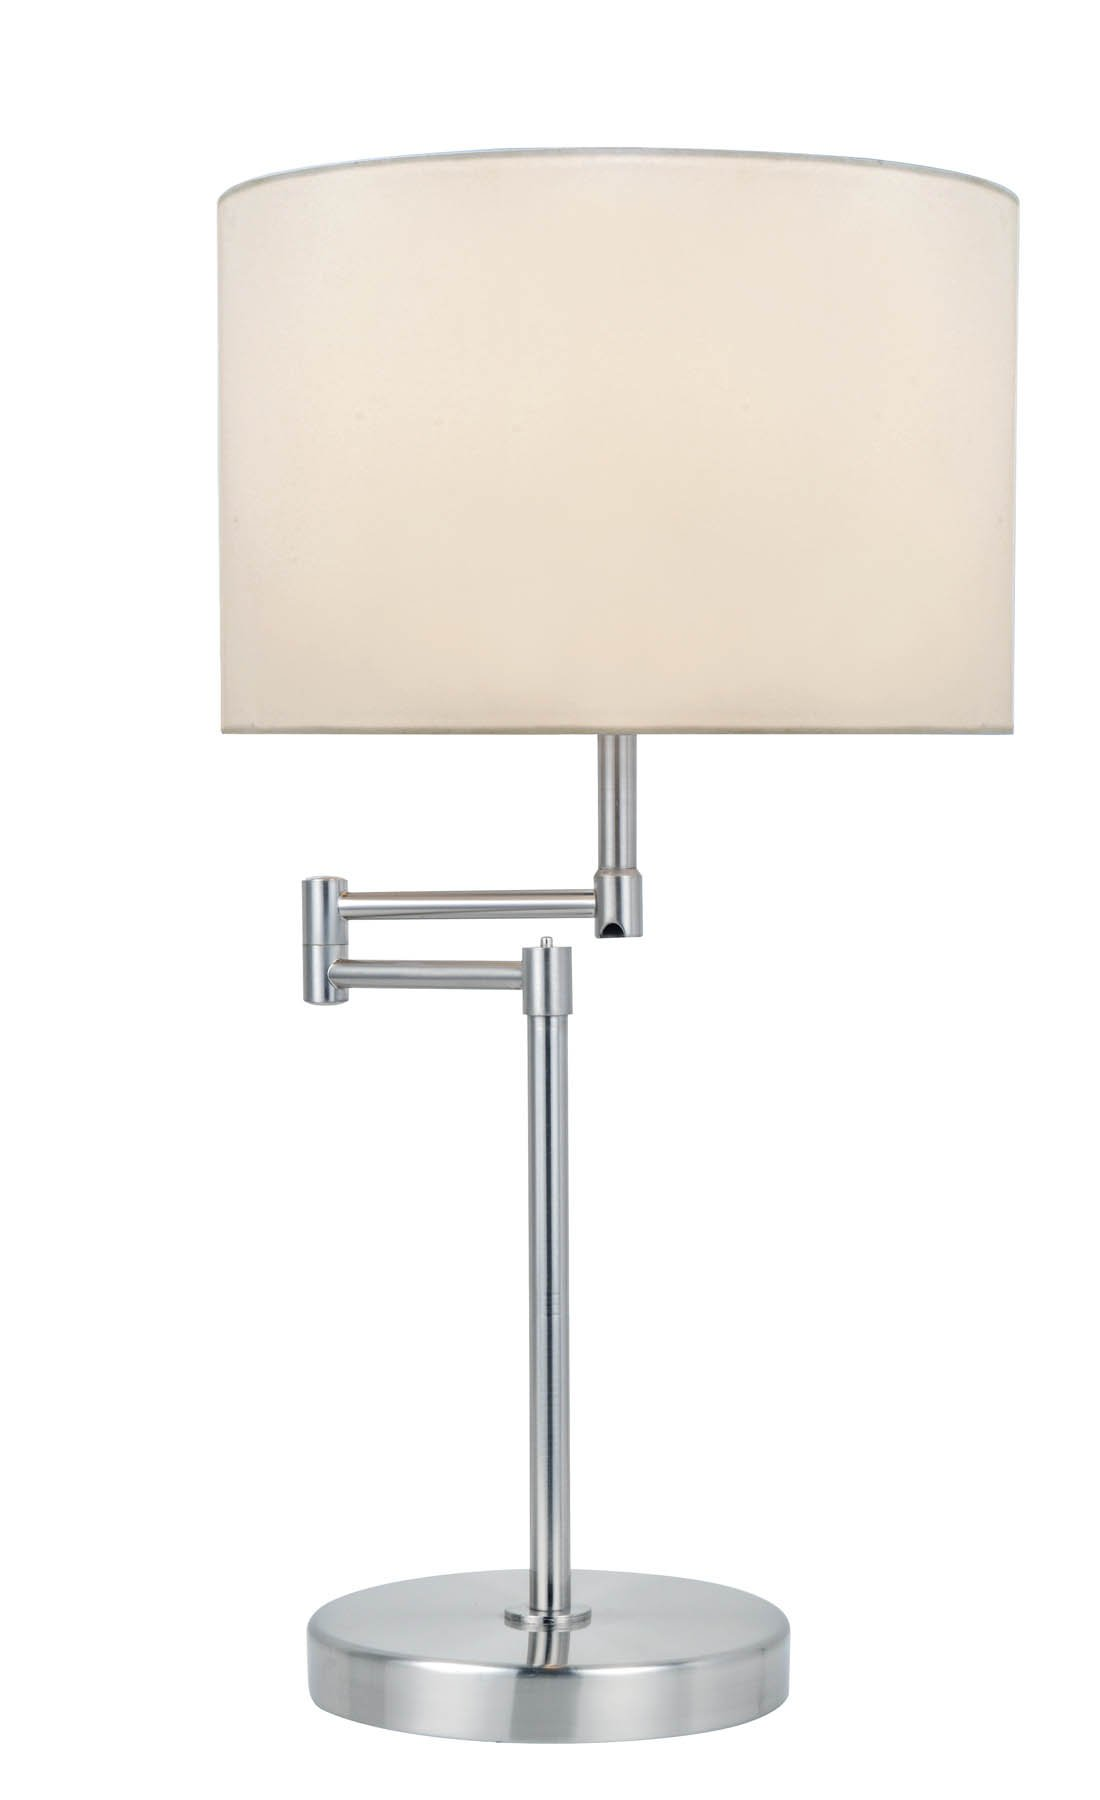 Lite Source LS-22215PS/WHT Durango Table Lamp with Swing Arm, 19'' x 12'' x 22'', Polished Steel Finish/White Fabric Shade